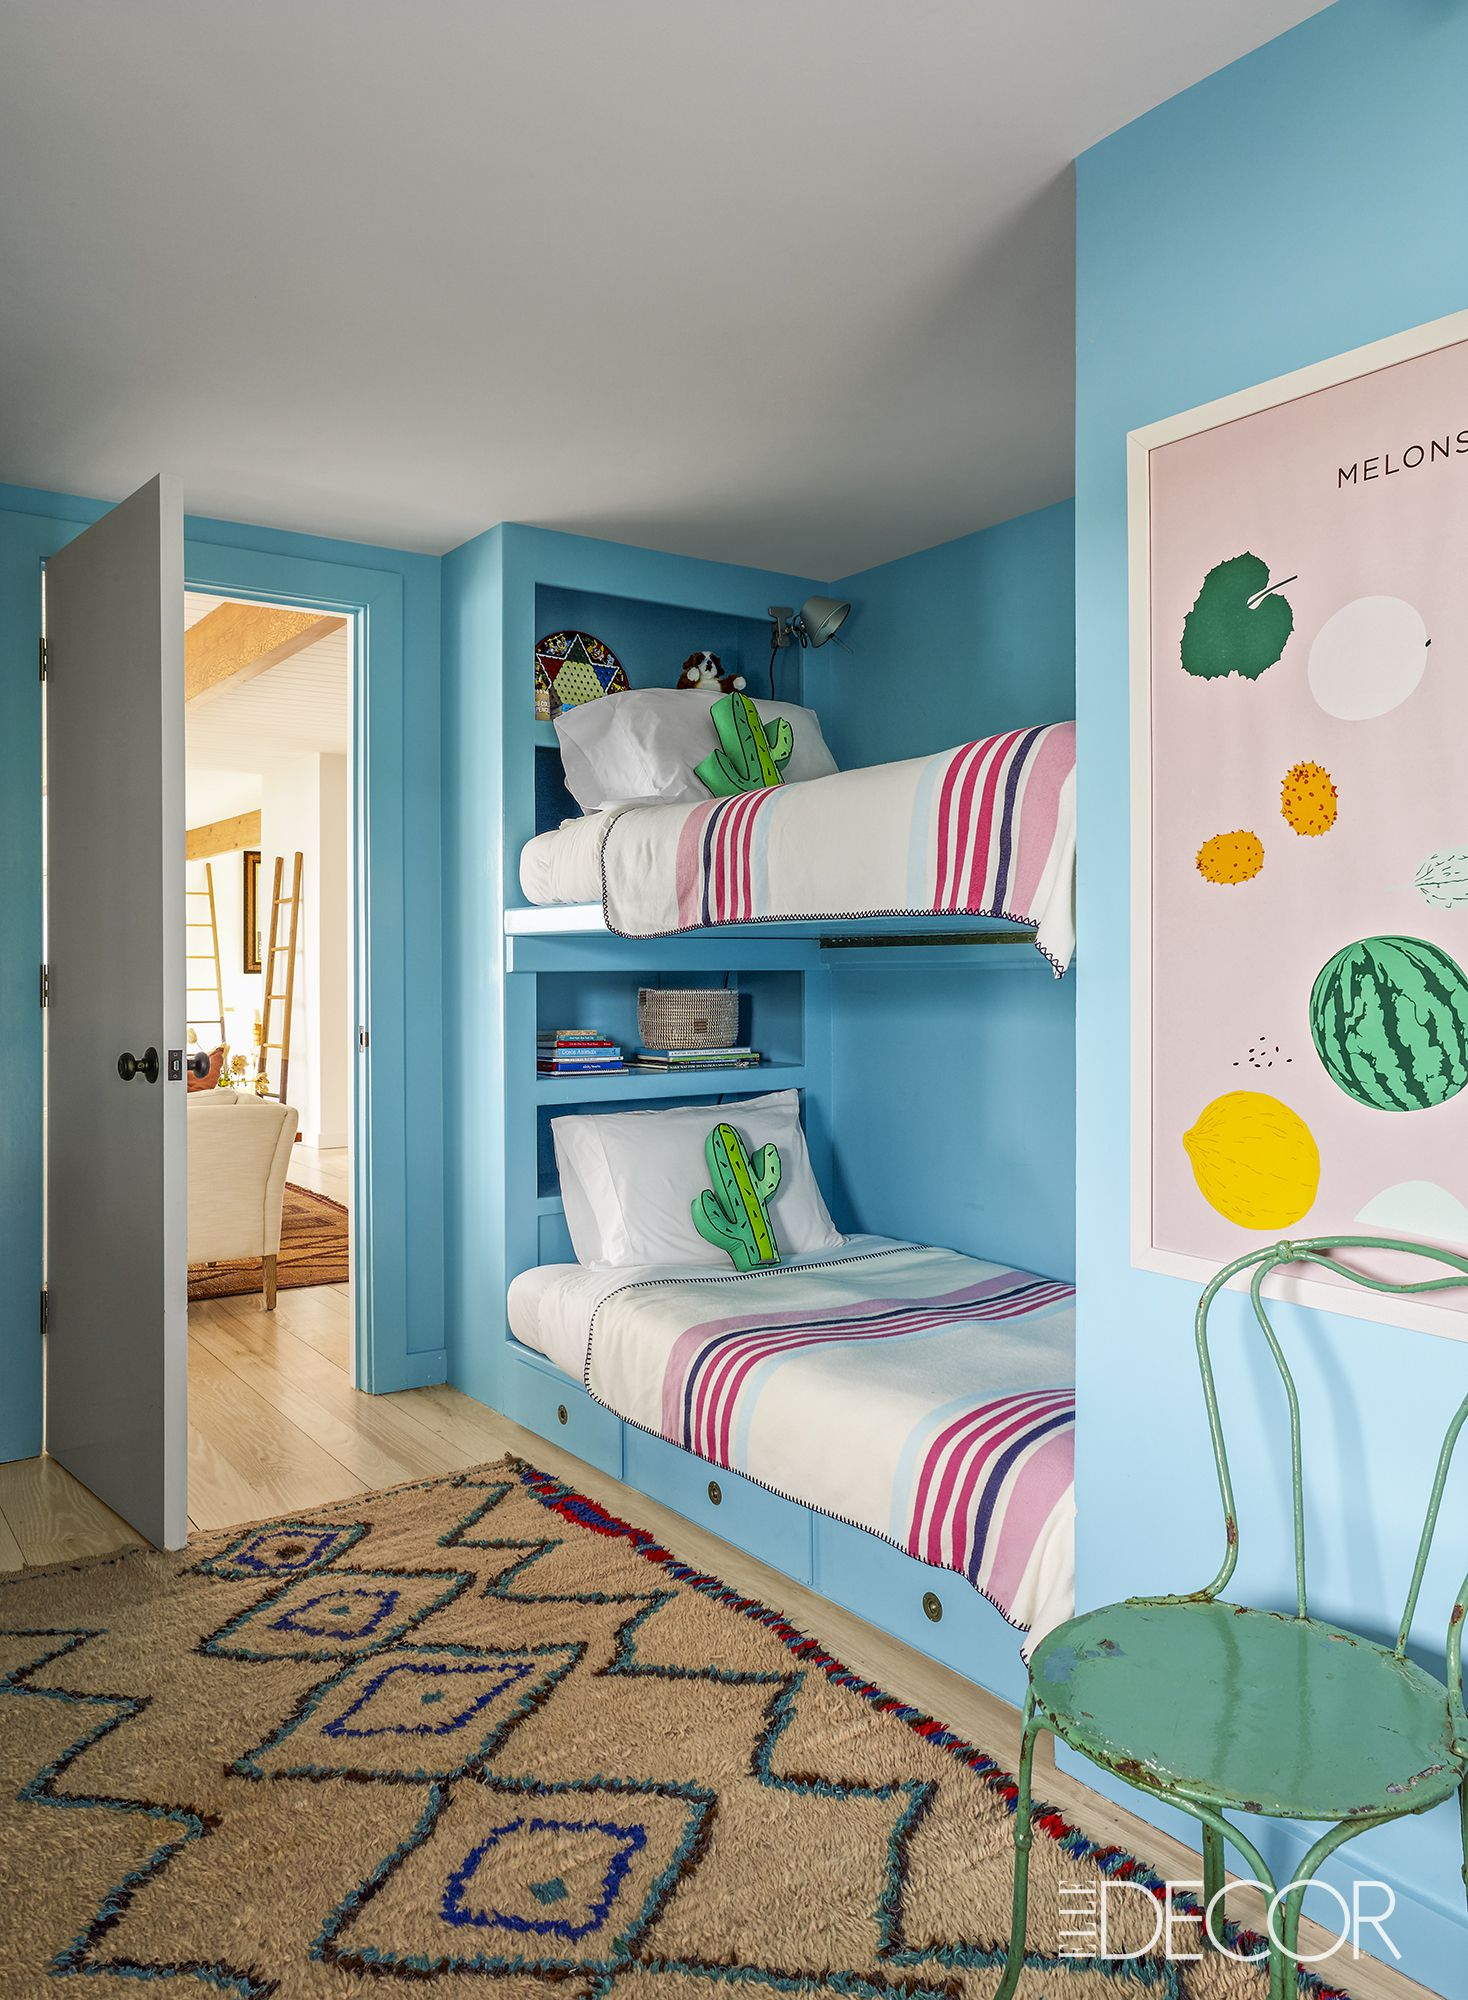 25 Cool Kids' Room Ideas - How to Decorate a Child's Bedroom